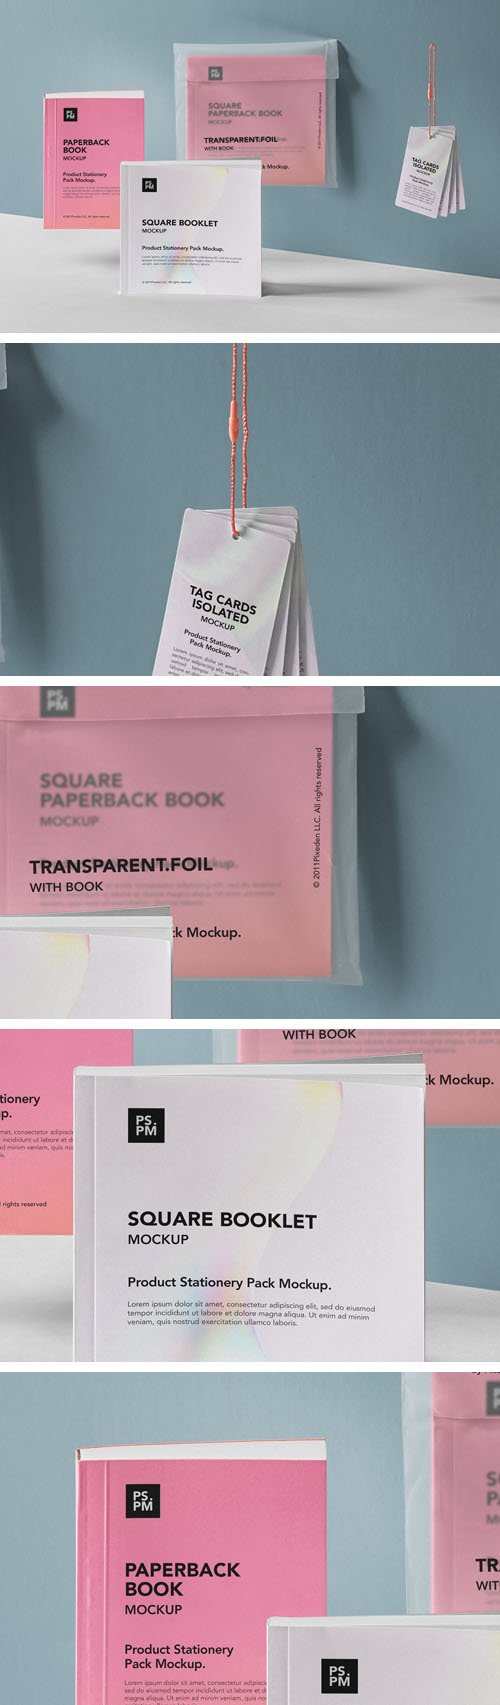 Product Stationary Pack PSD Mockup